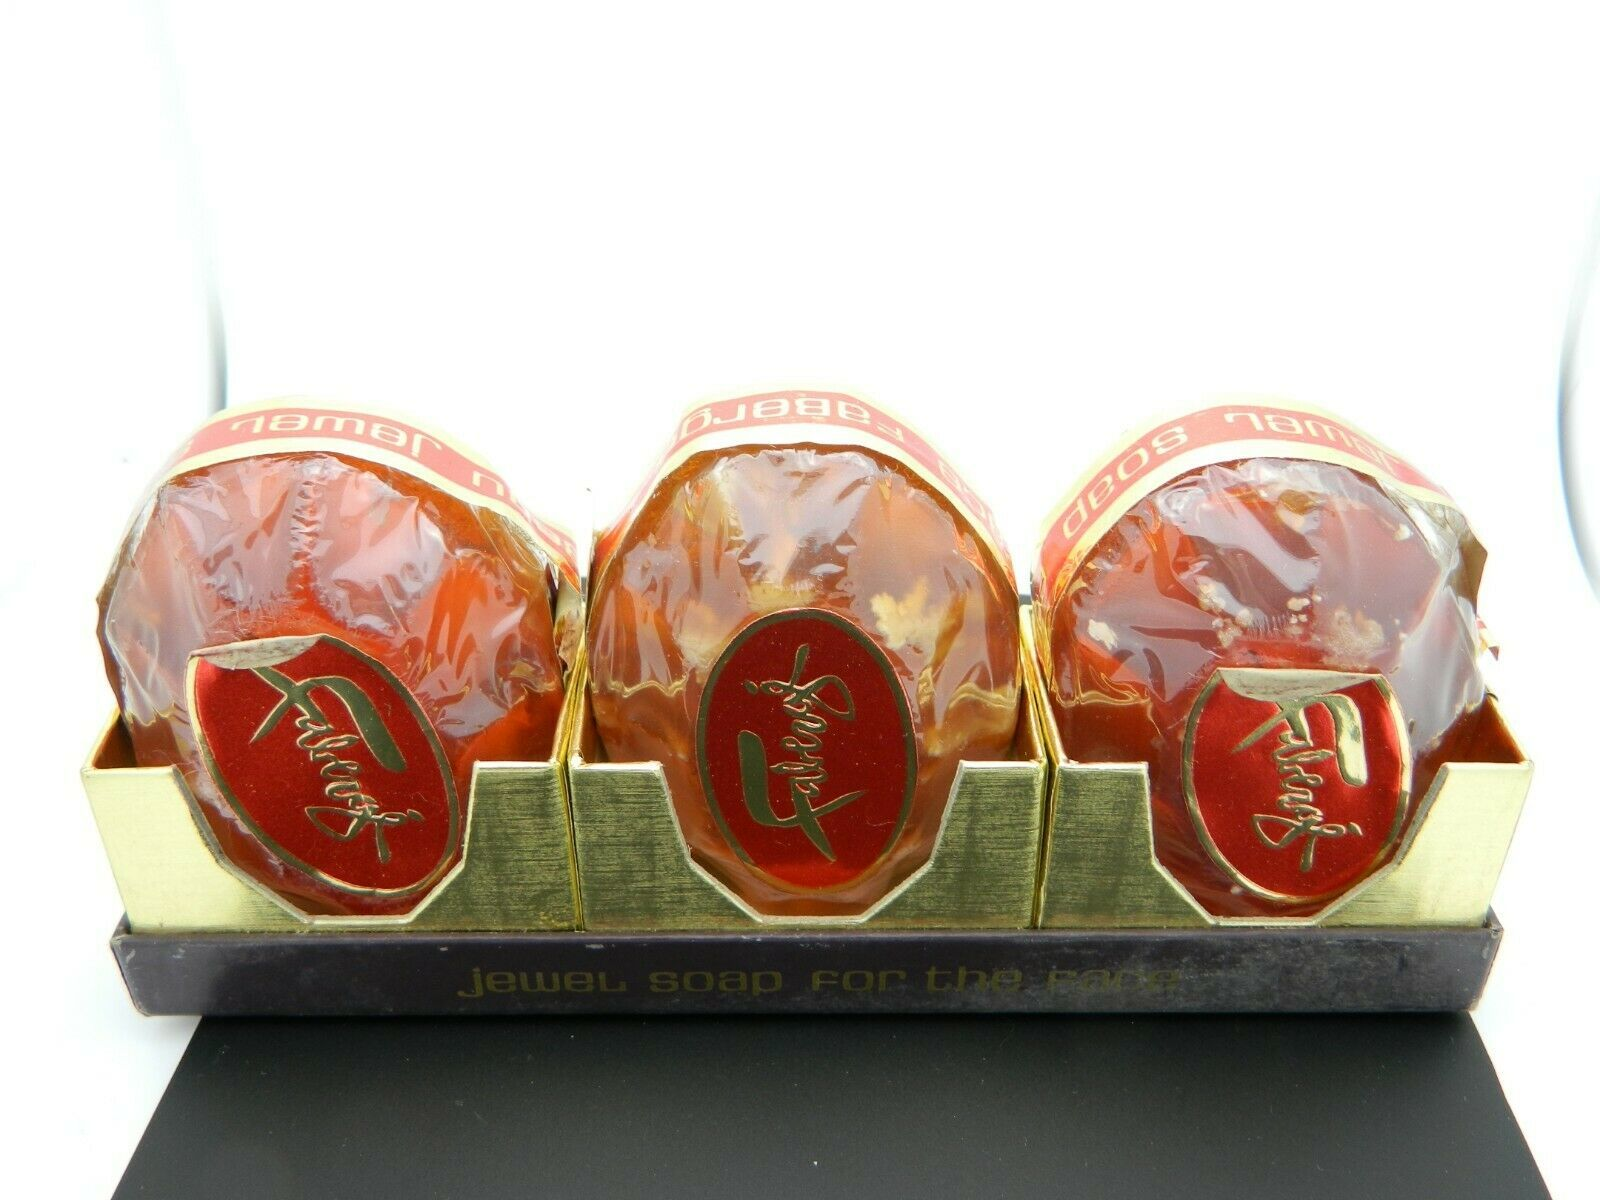 Faberge Flambeau Jewel Soap For The Face 3 Bars Vintage New Old Stock